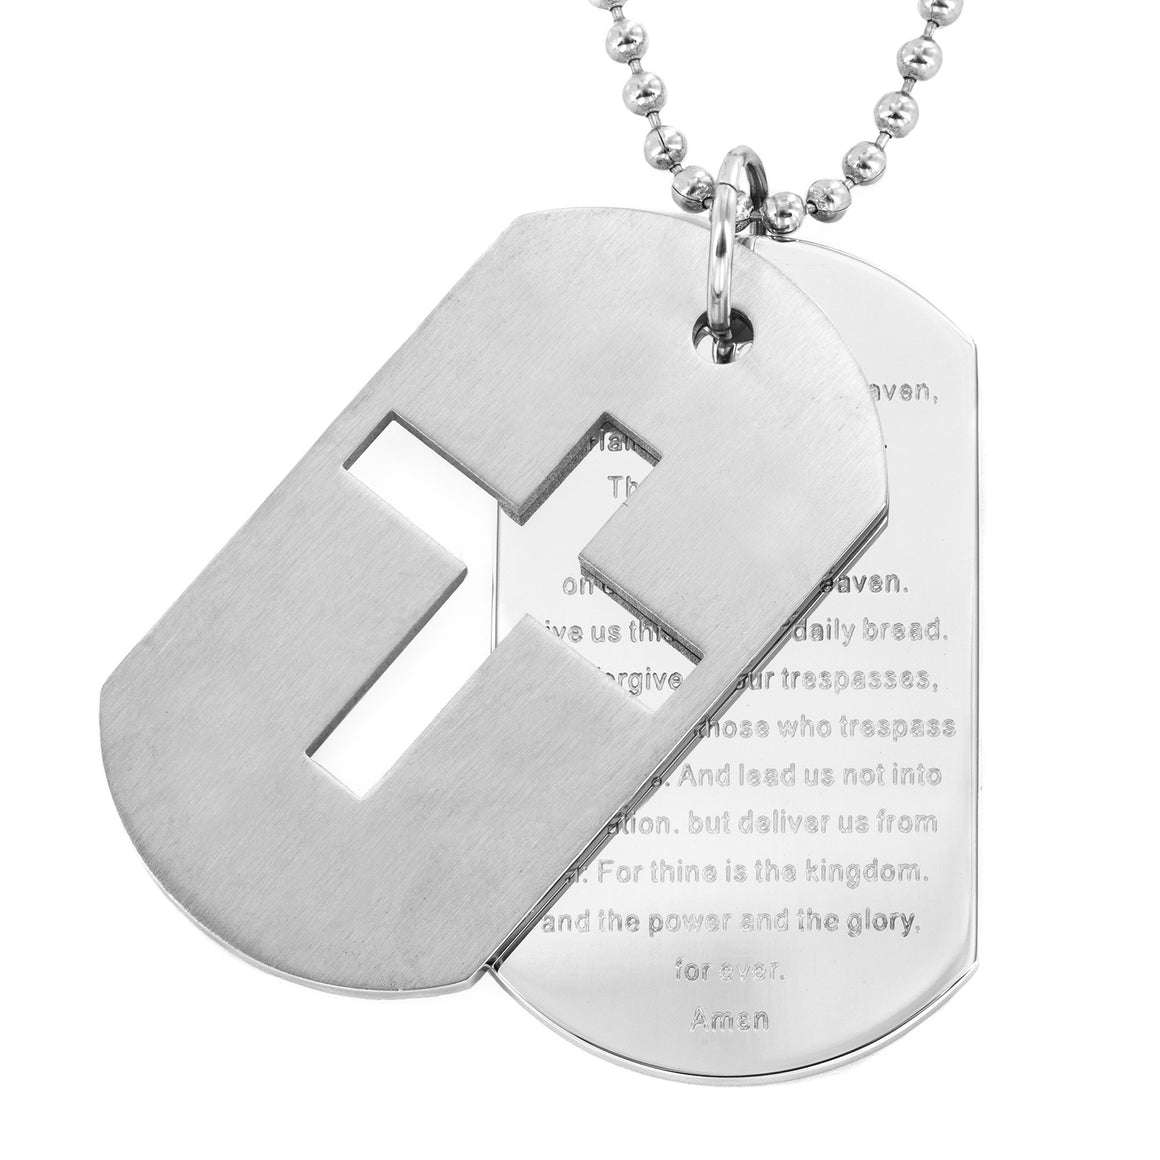 Crucible Men's Stainless Steel Cross and 'Lord's Prayer' Double Dog Tag Pendant Necklace